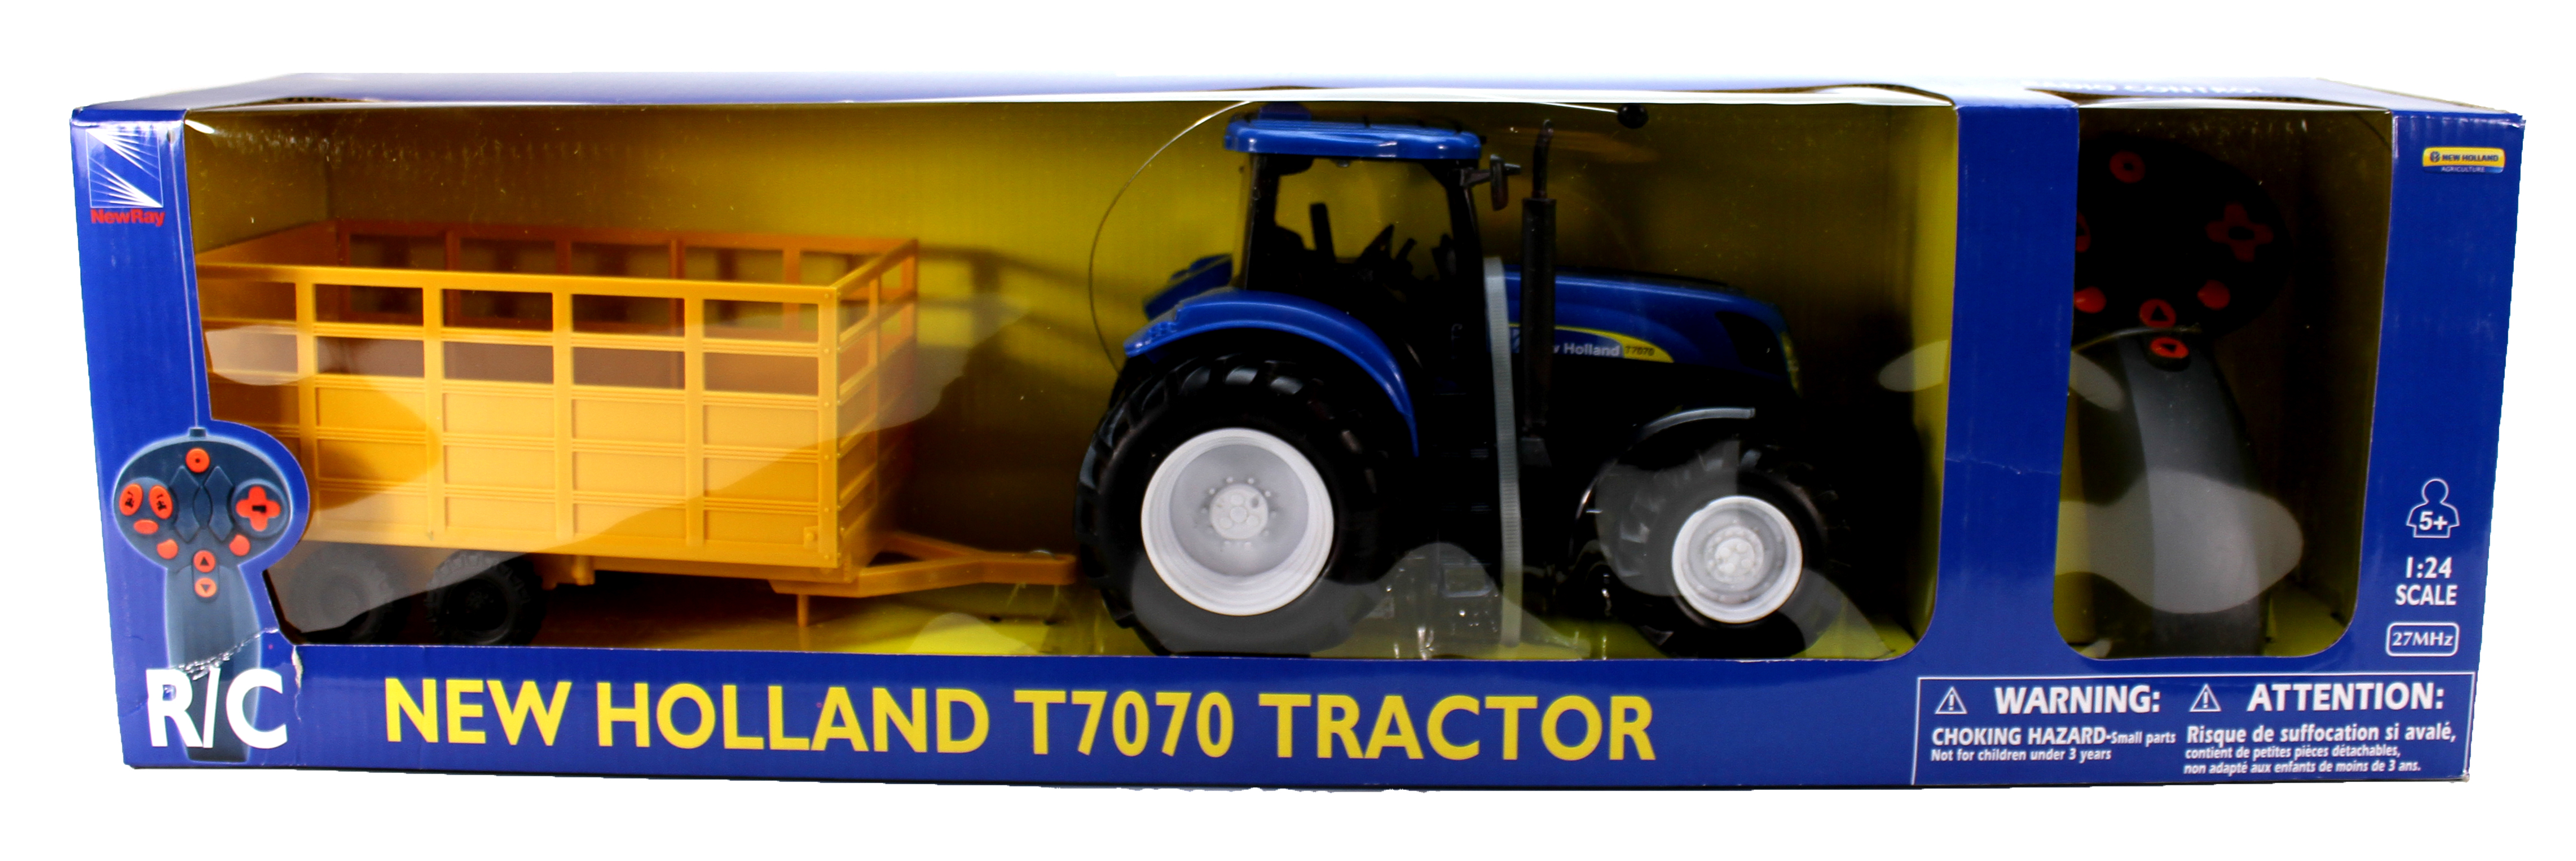 R C 1:24 New Holland T7070 Farm Tractor & Trailer by NewRay